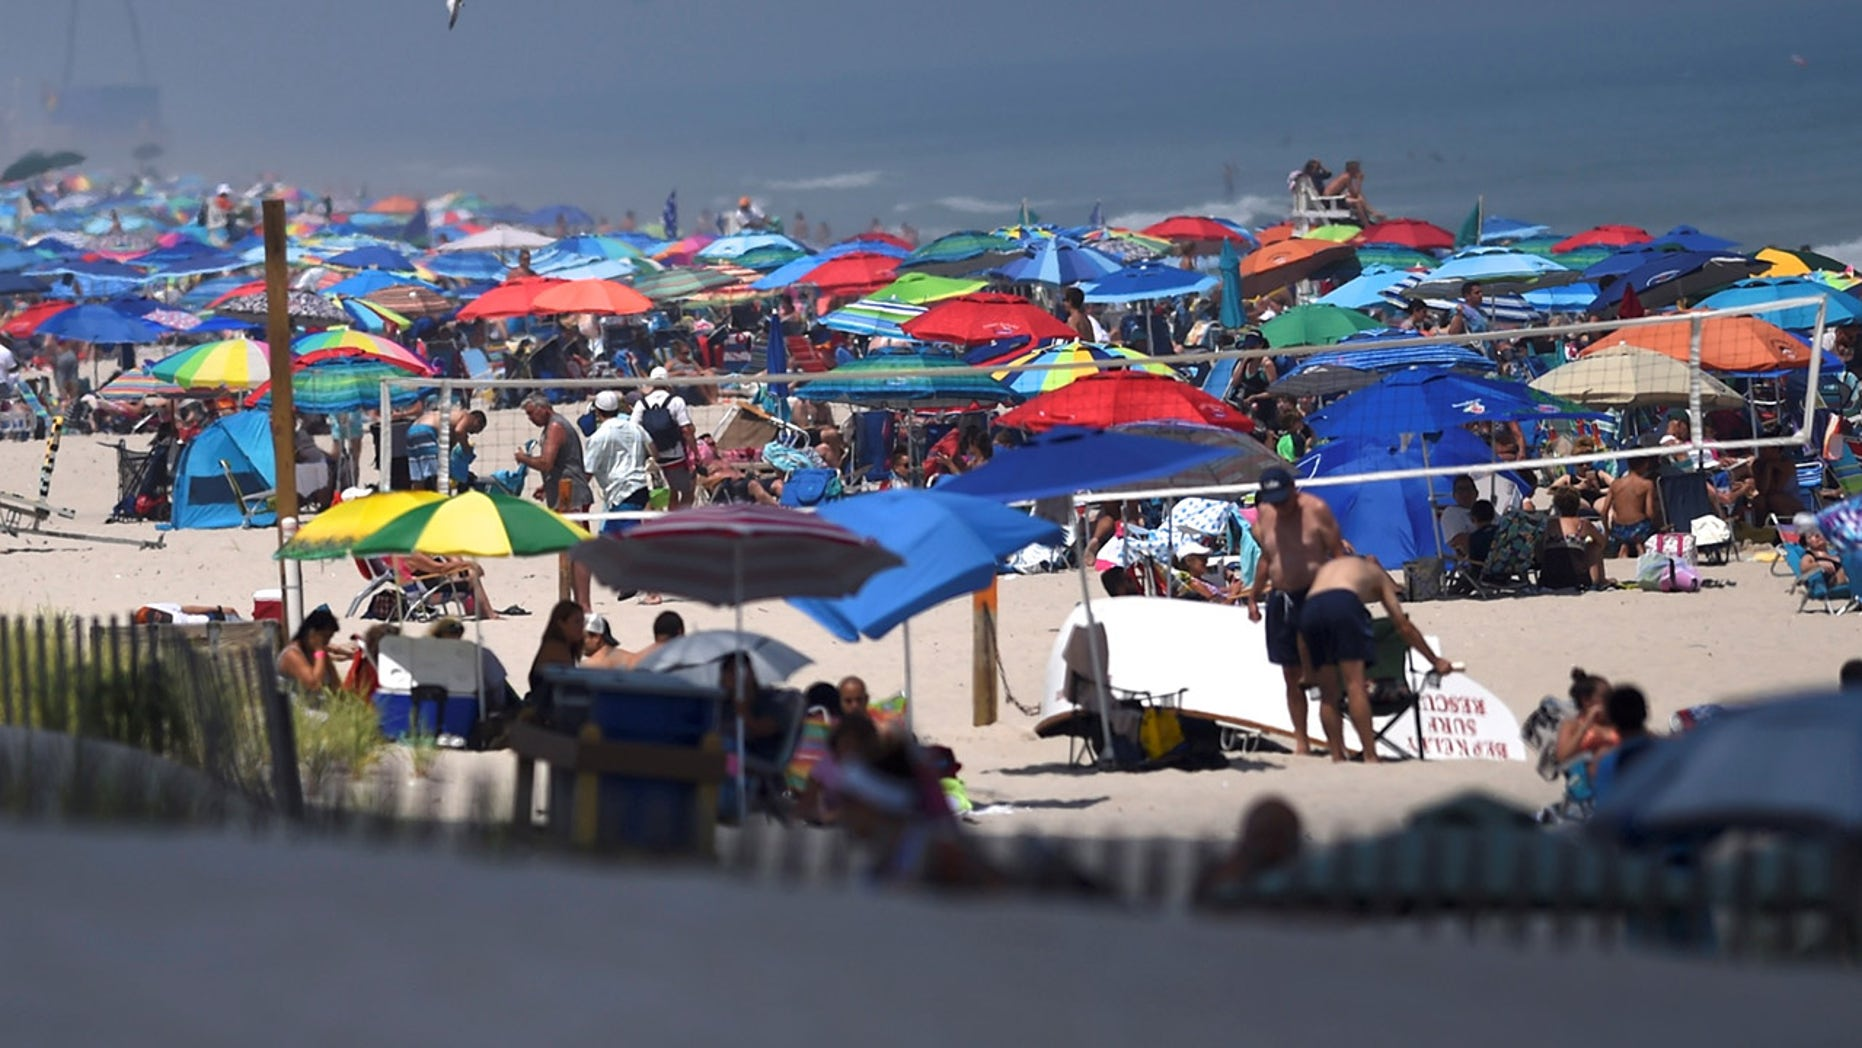 Overcrowding has become a real issue for the Jersey shore borough.